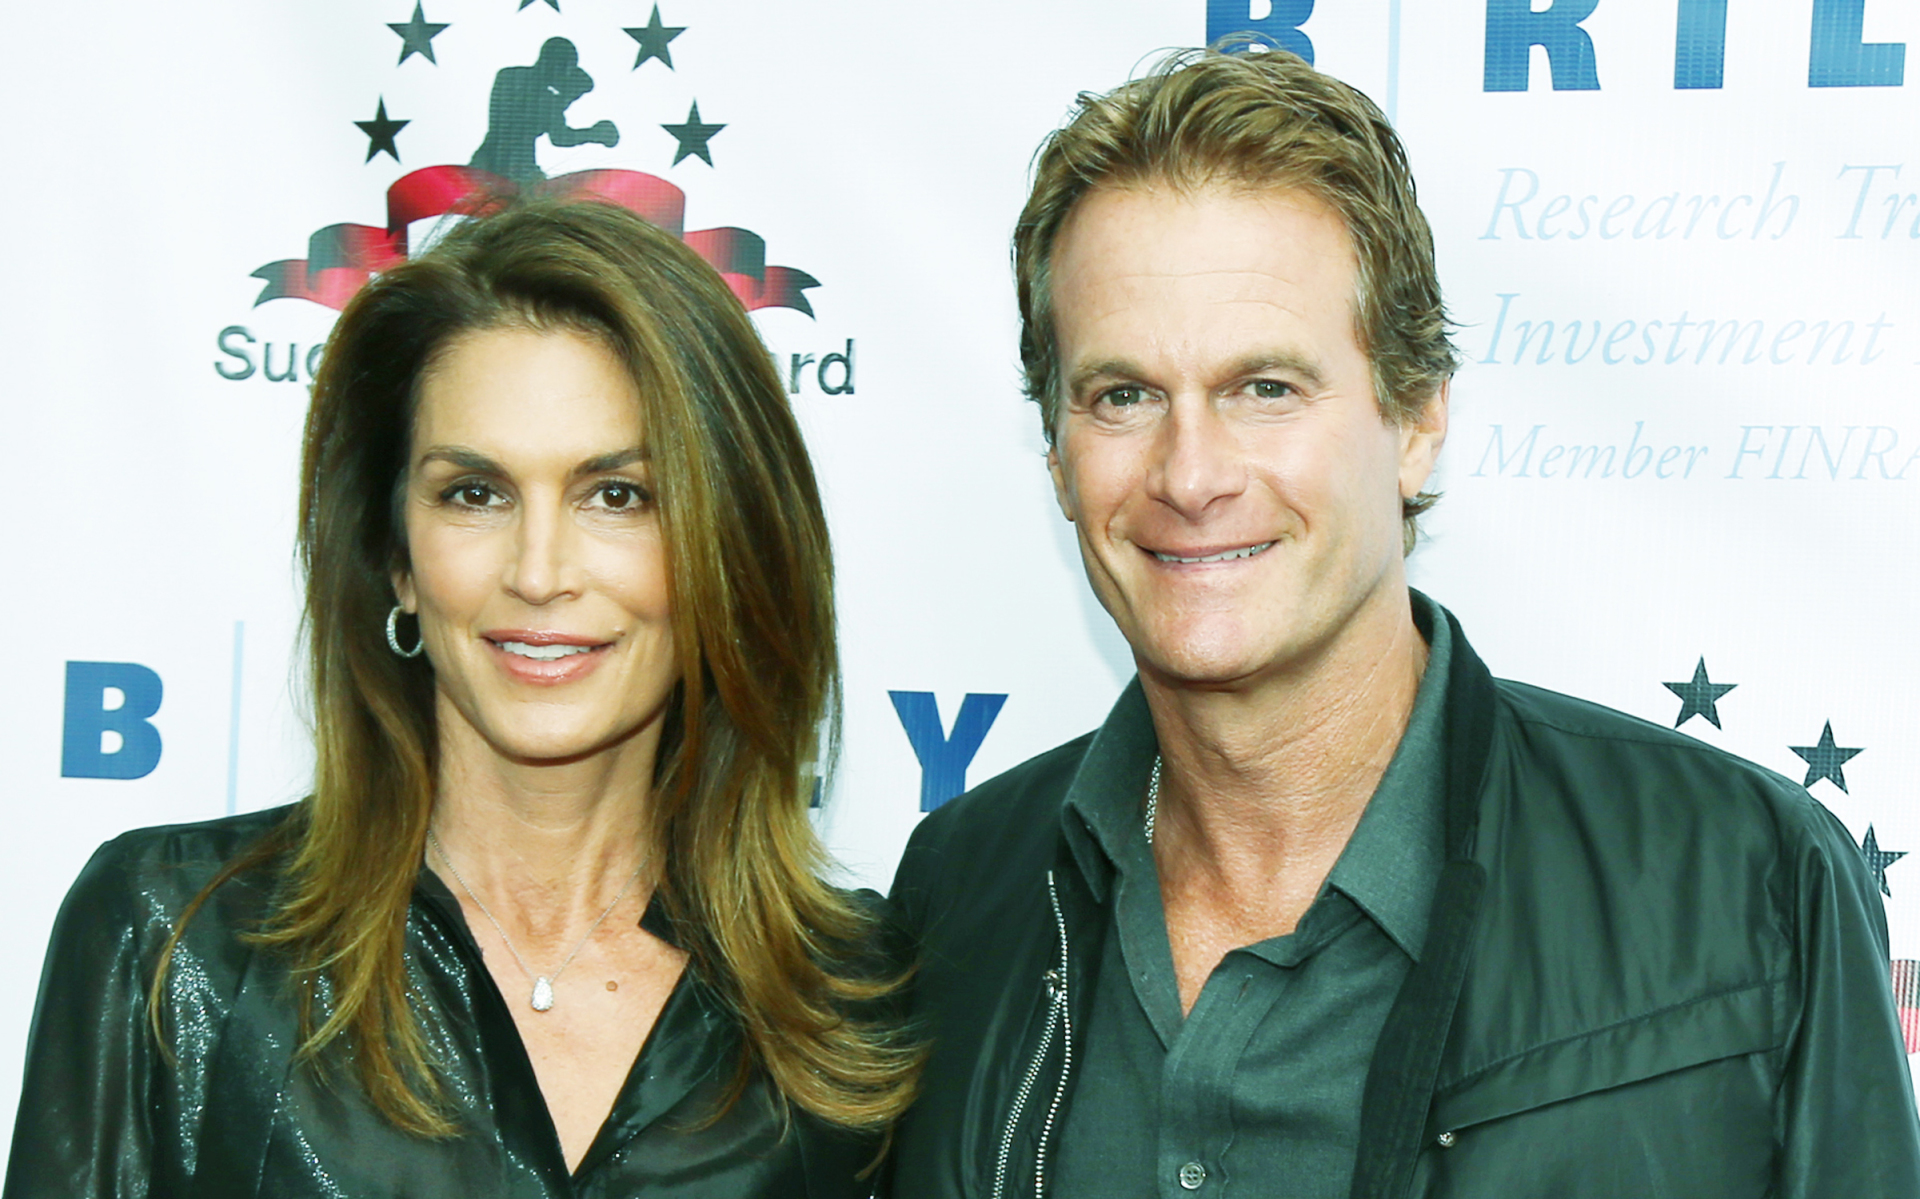 Cindy Crawford & Rande Gerber Celebrate Their 19th Wedding Anniversary